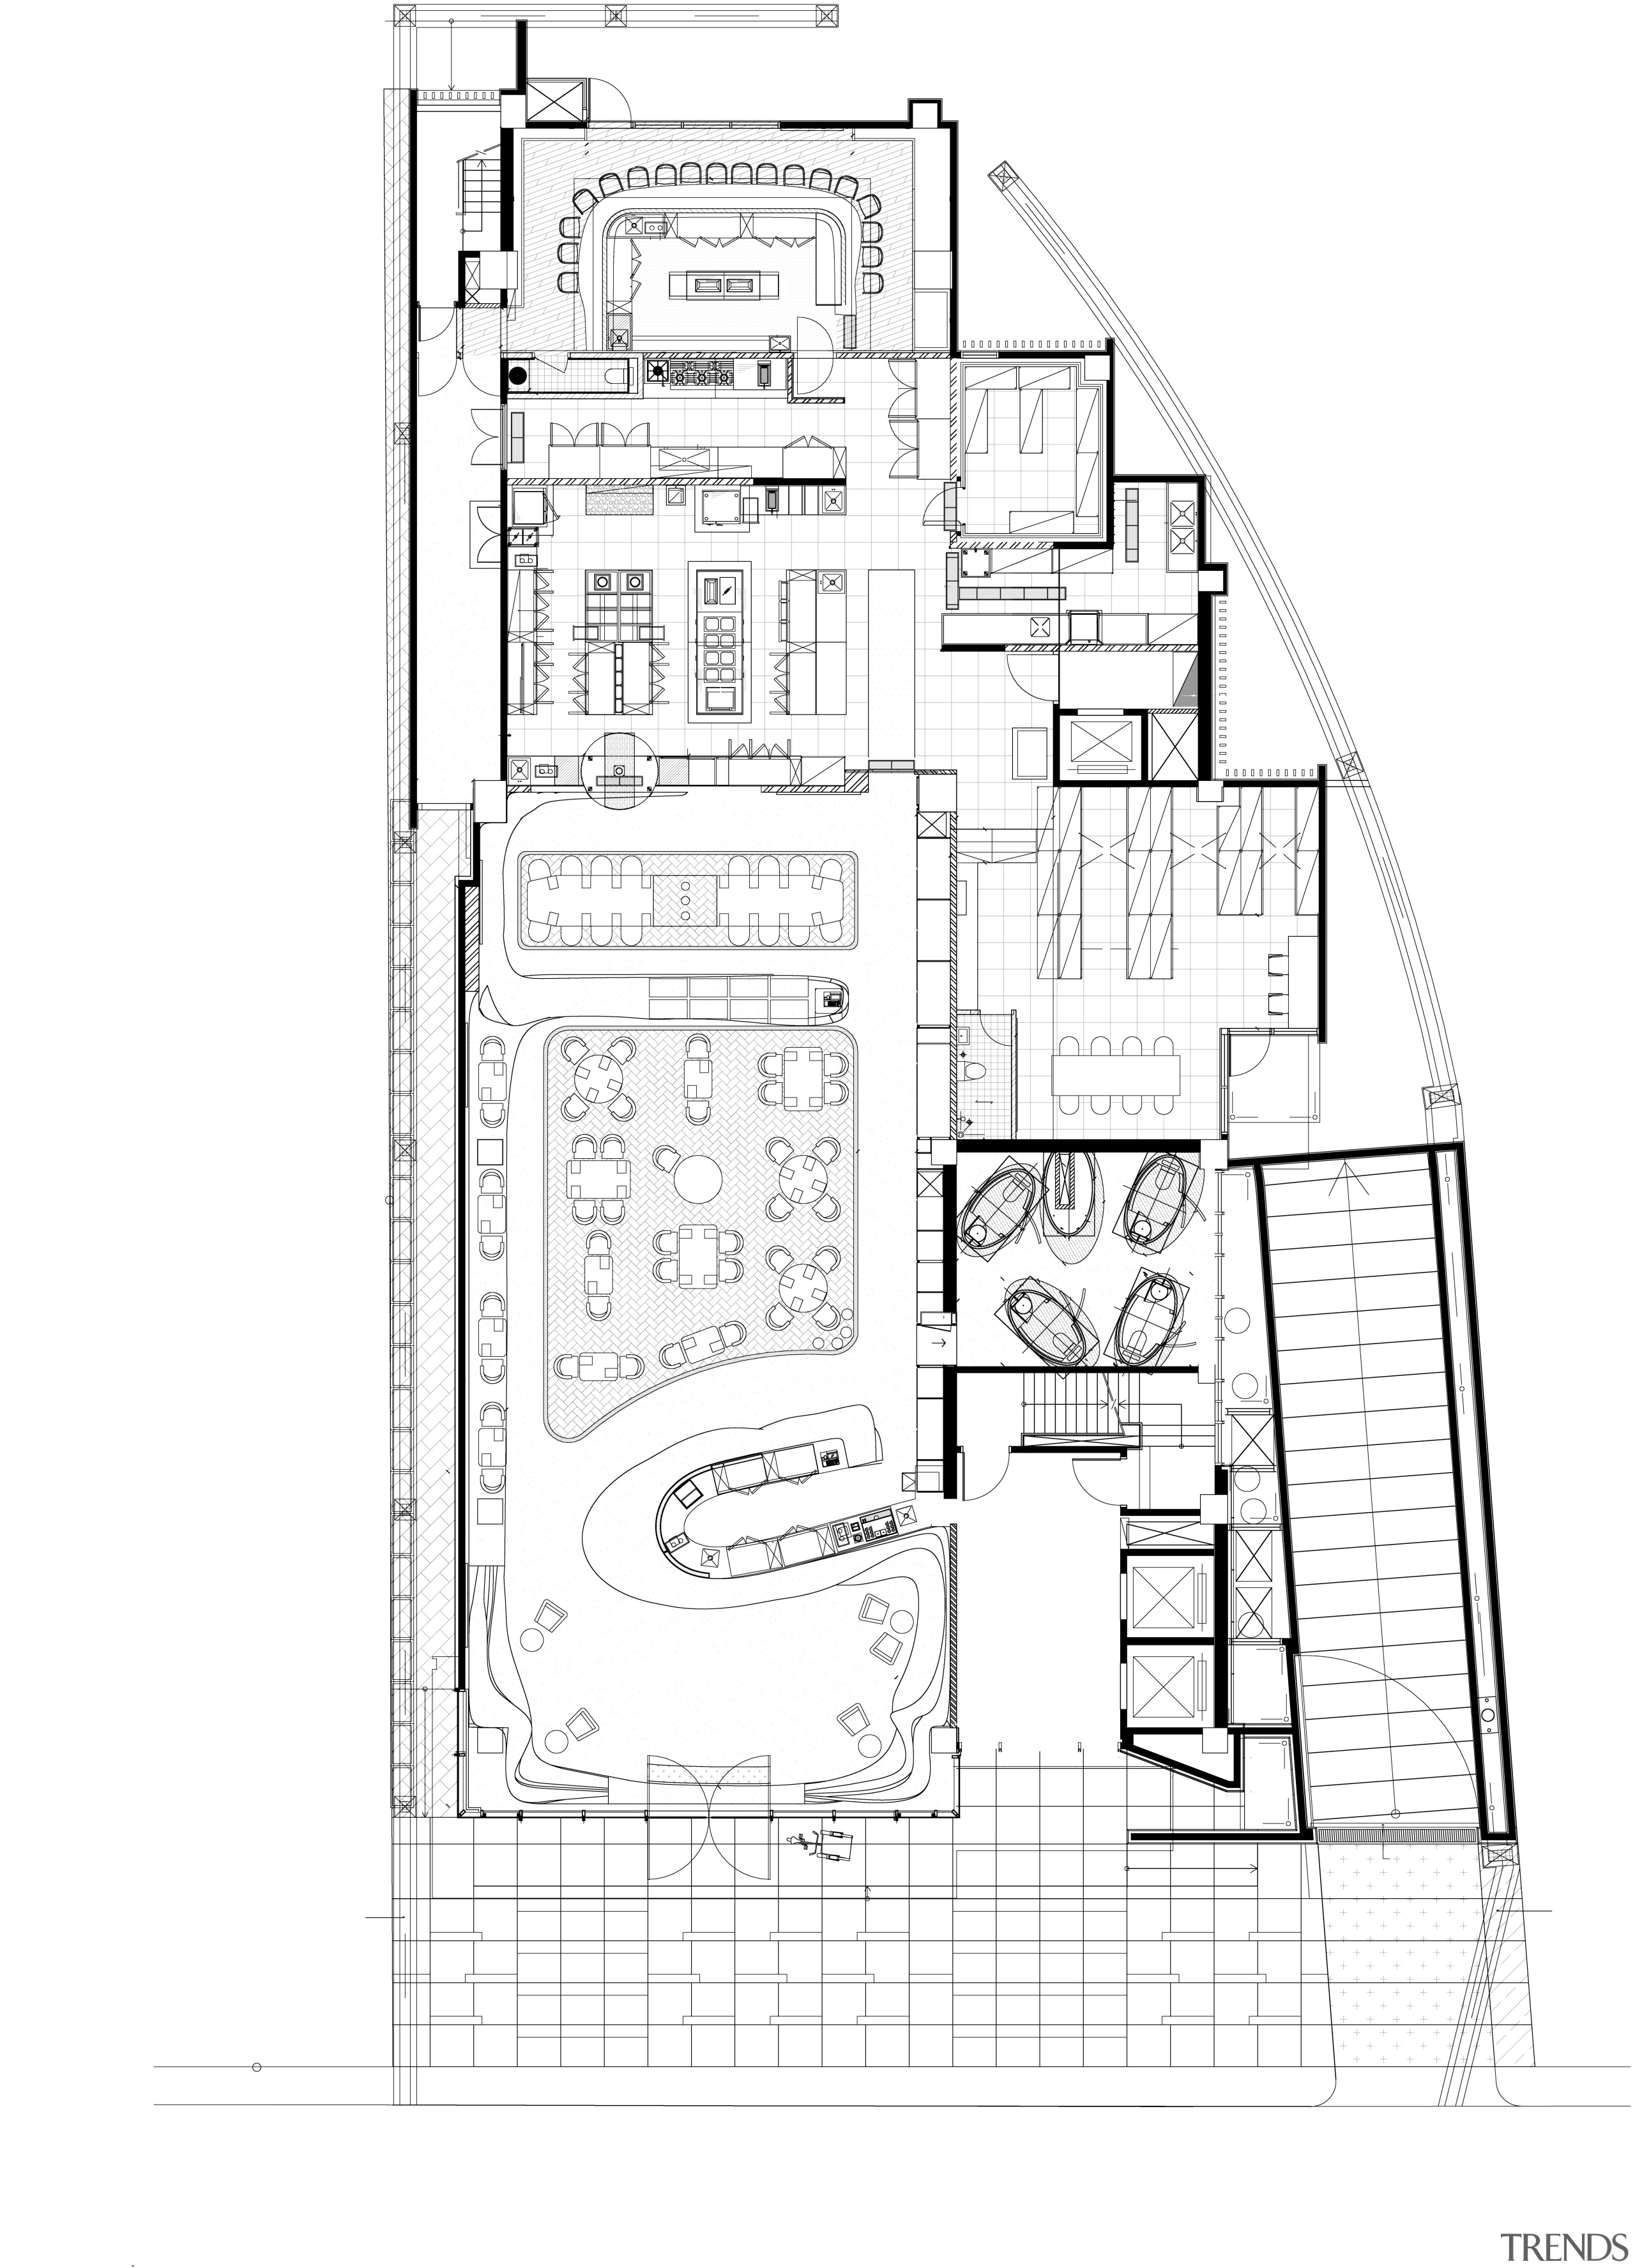 The centrepiece of Raw restaurant in Taipei is architecture, area, artwork, black and white, design, diagram, drawing, elevation, floor plan, home, line, line art, plan, product, product design, schematic, sketch, structure, technical drawing, text, white